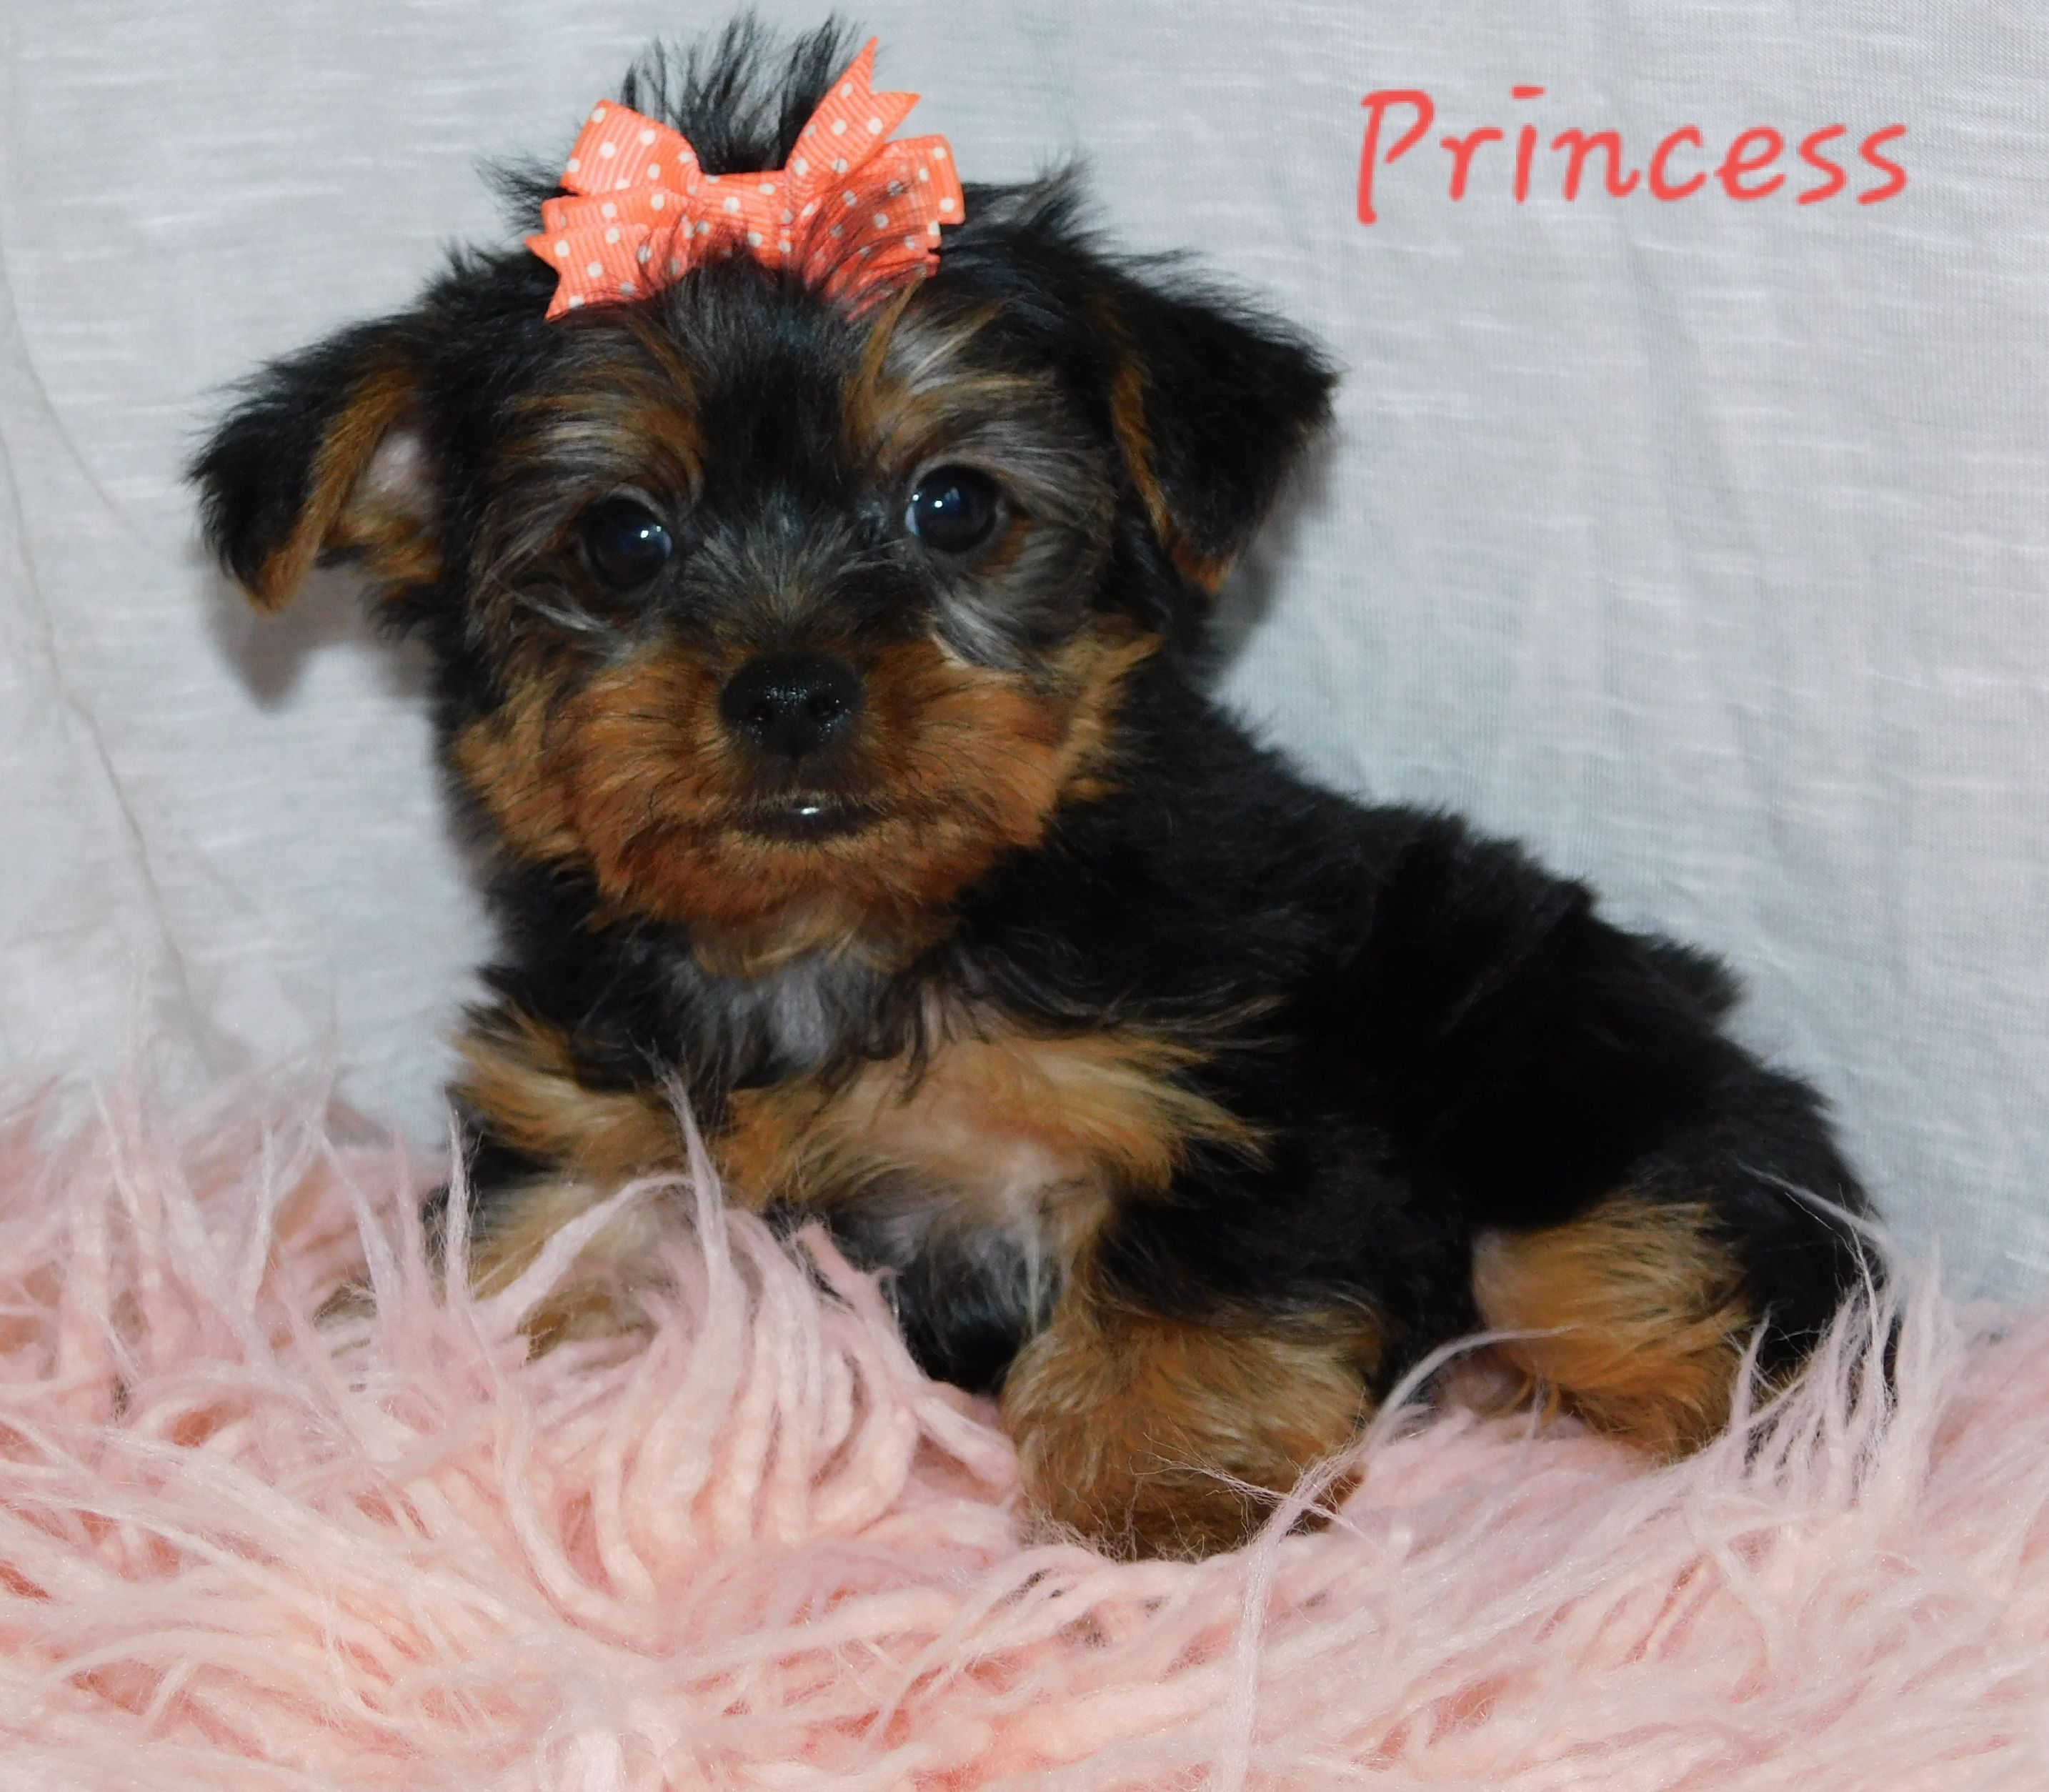 Puppies For Sale Yorkshire Terrier Puppies Puppies Lancaster Puppies